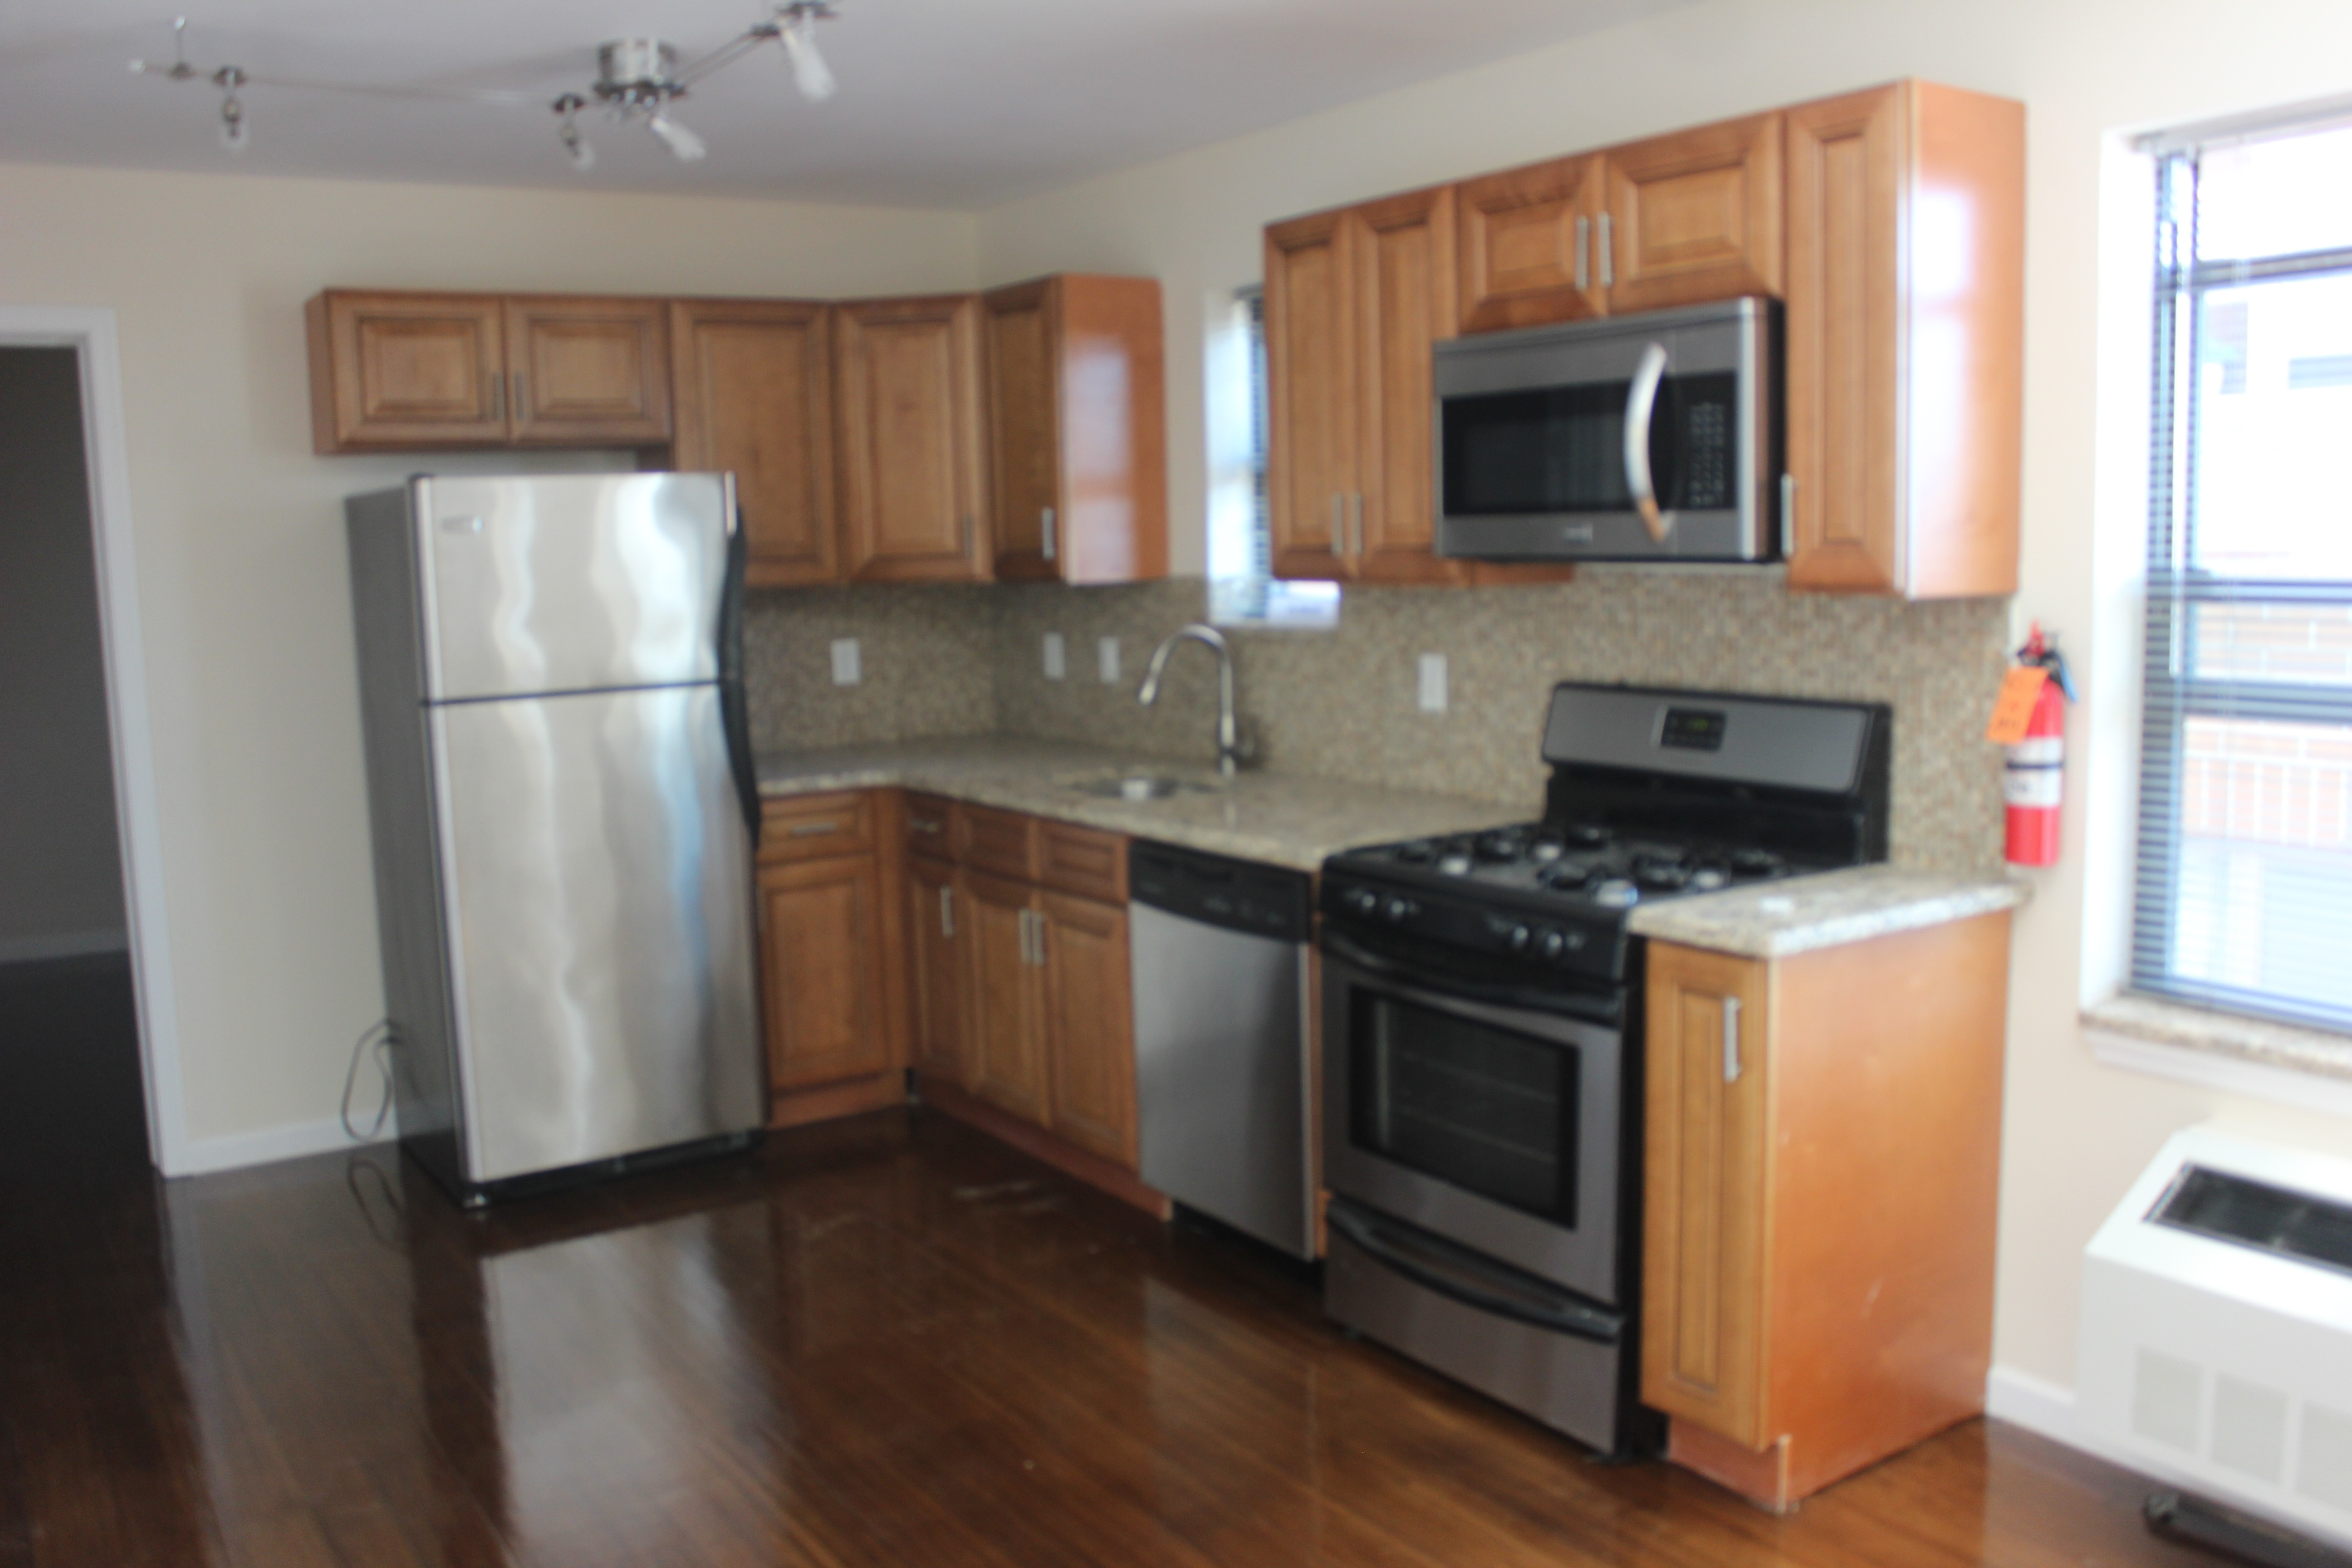 bergenline ave west new york nj 07093 2 bedroom apartment for rent